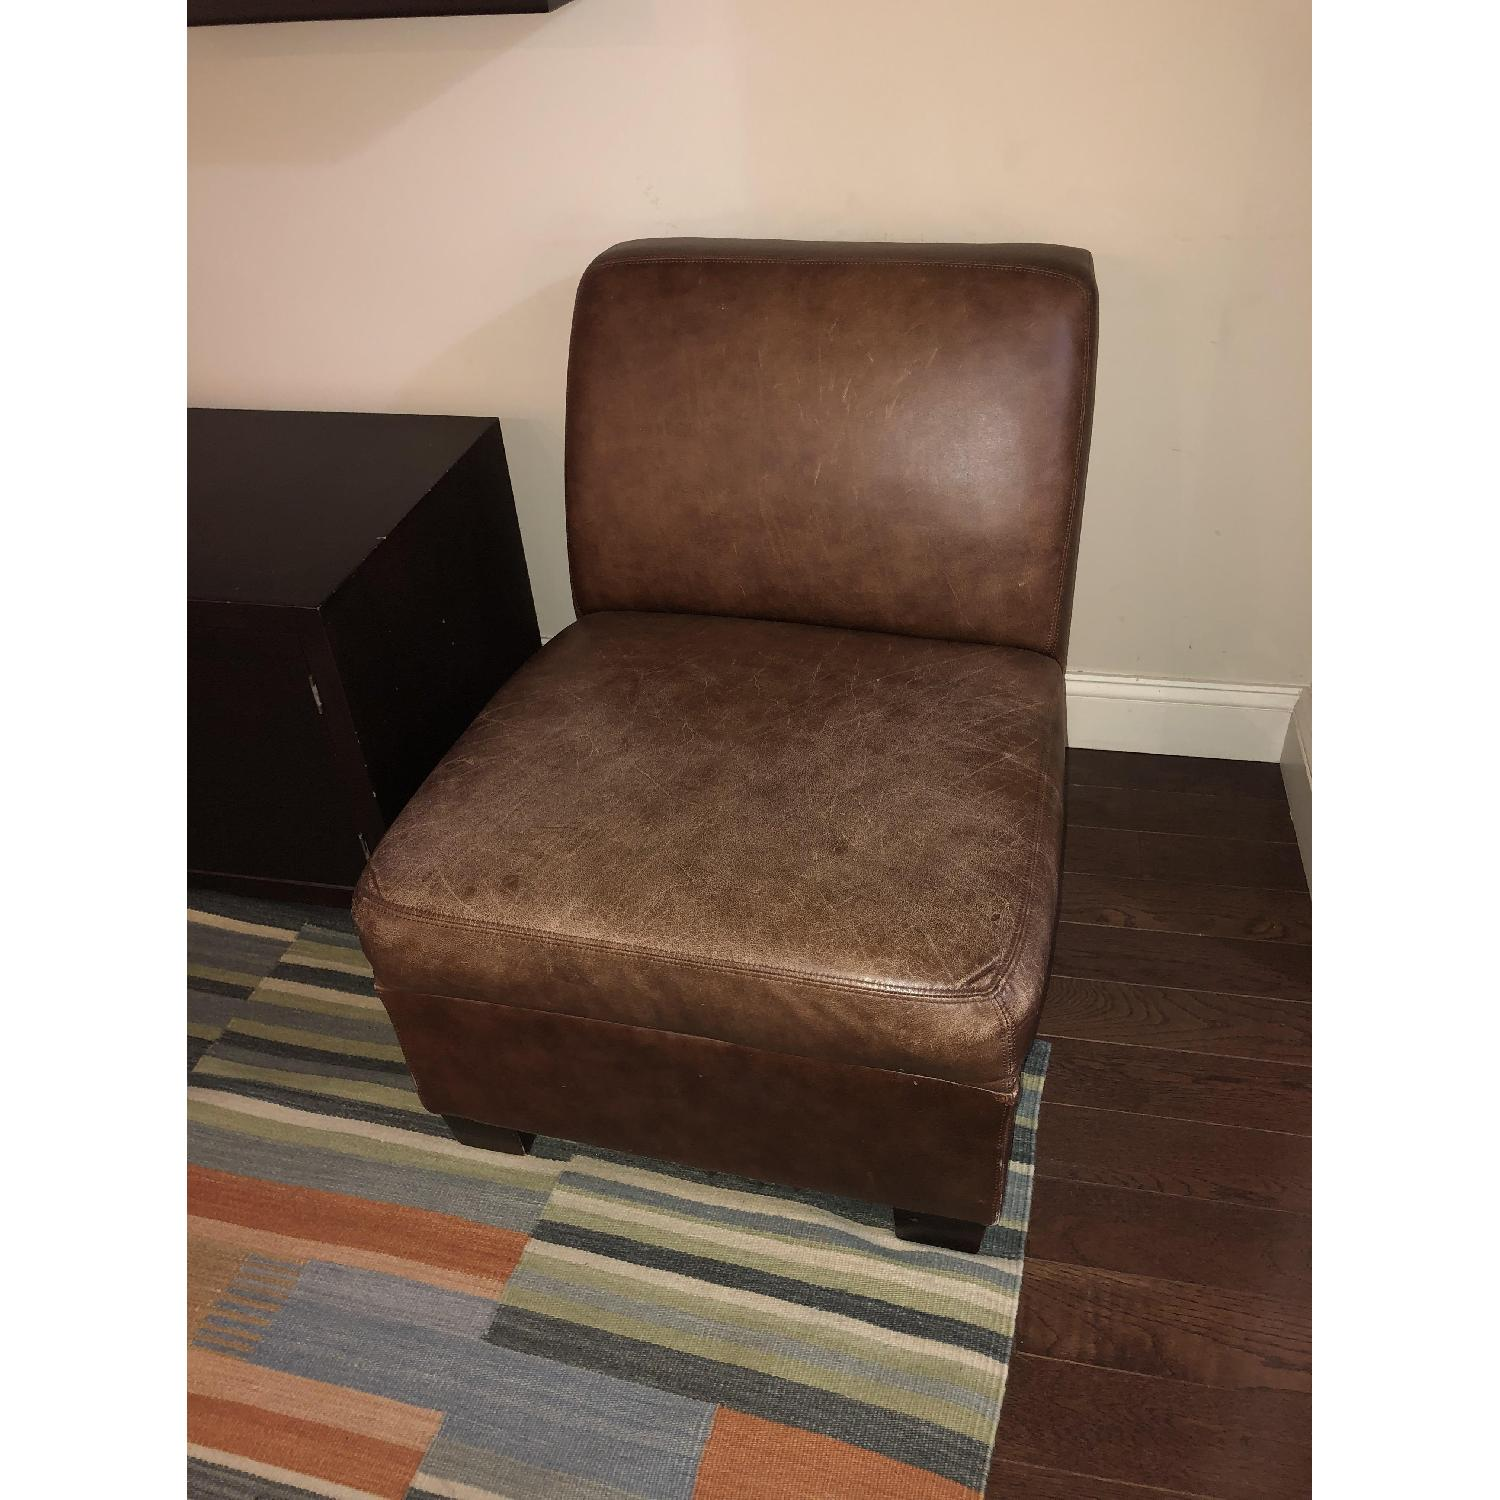 Pottery Barn Leather Club Chair-4